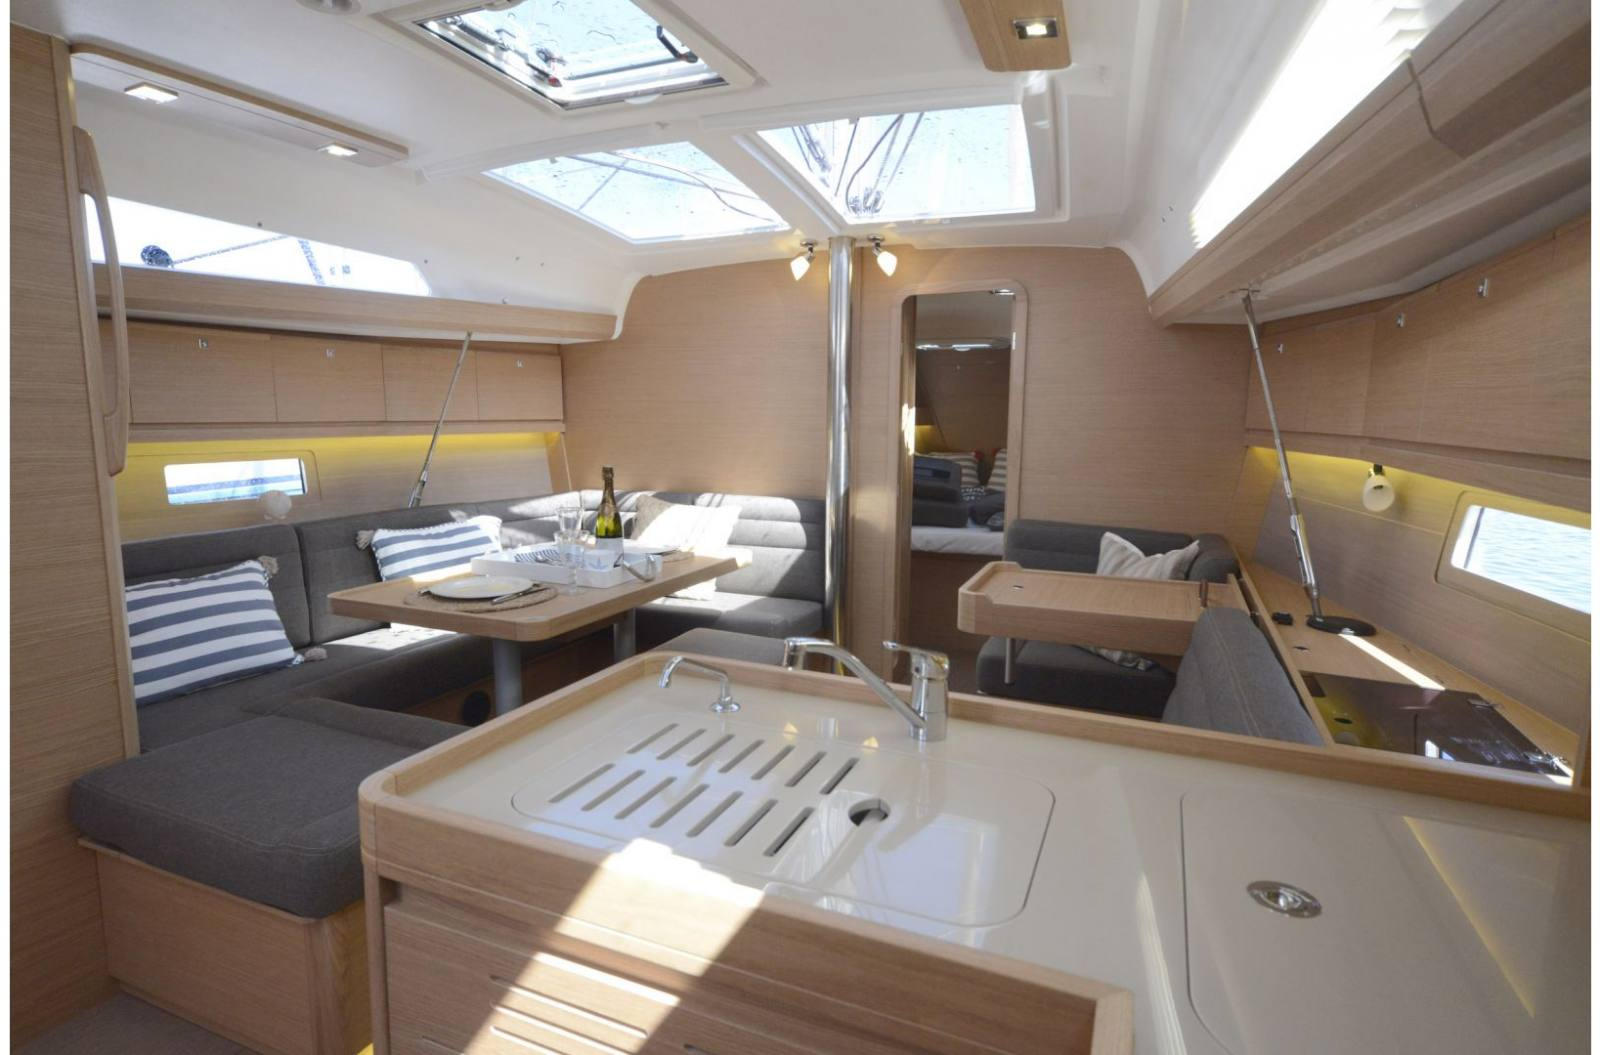 2018 Dufour Yachts 412 Grand Large For Sale In Racine Wi 3976 Fuel Filter Deck Plan